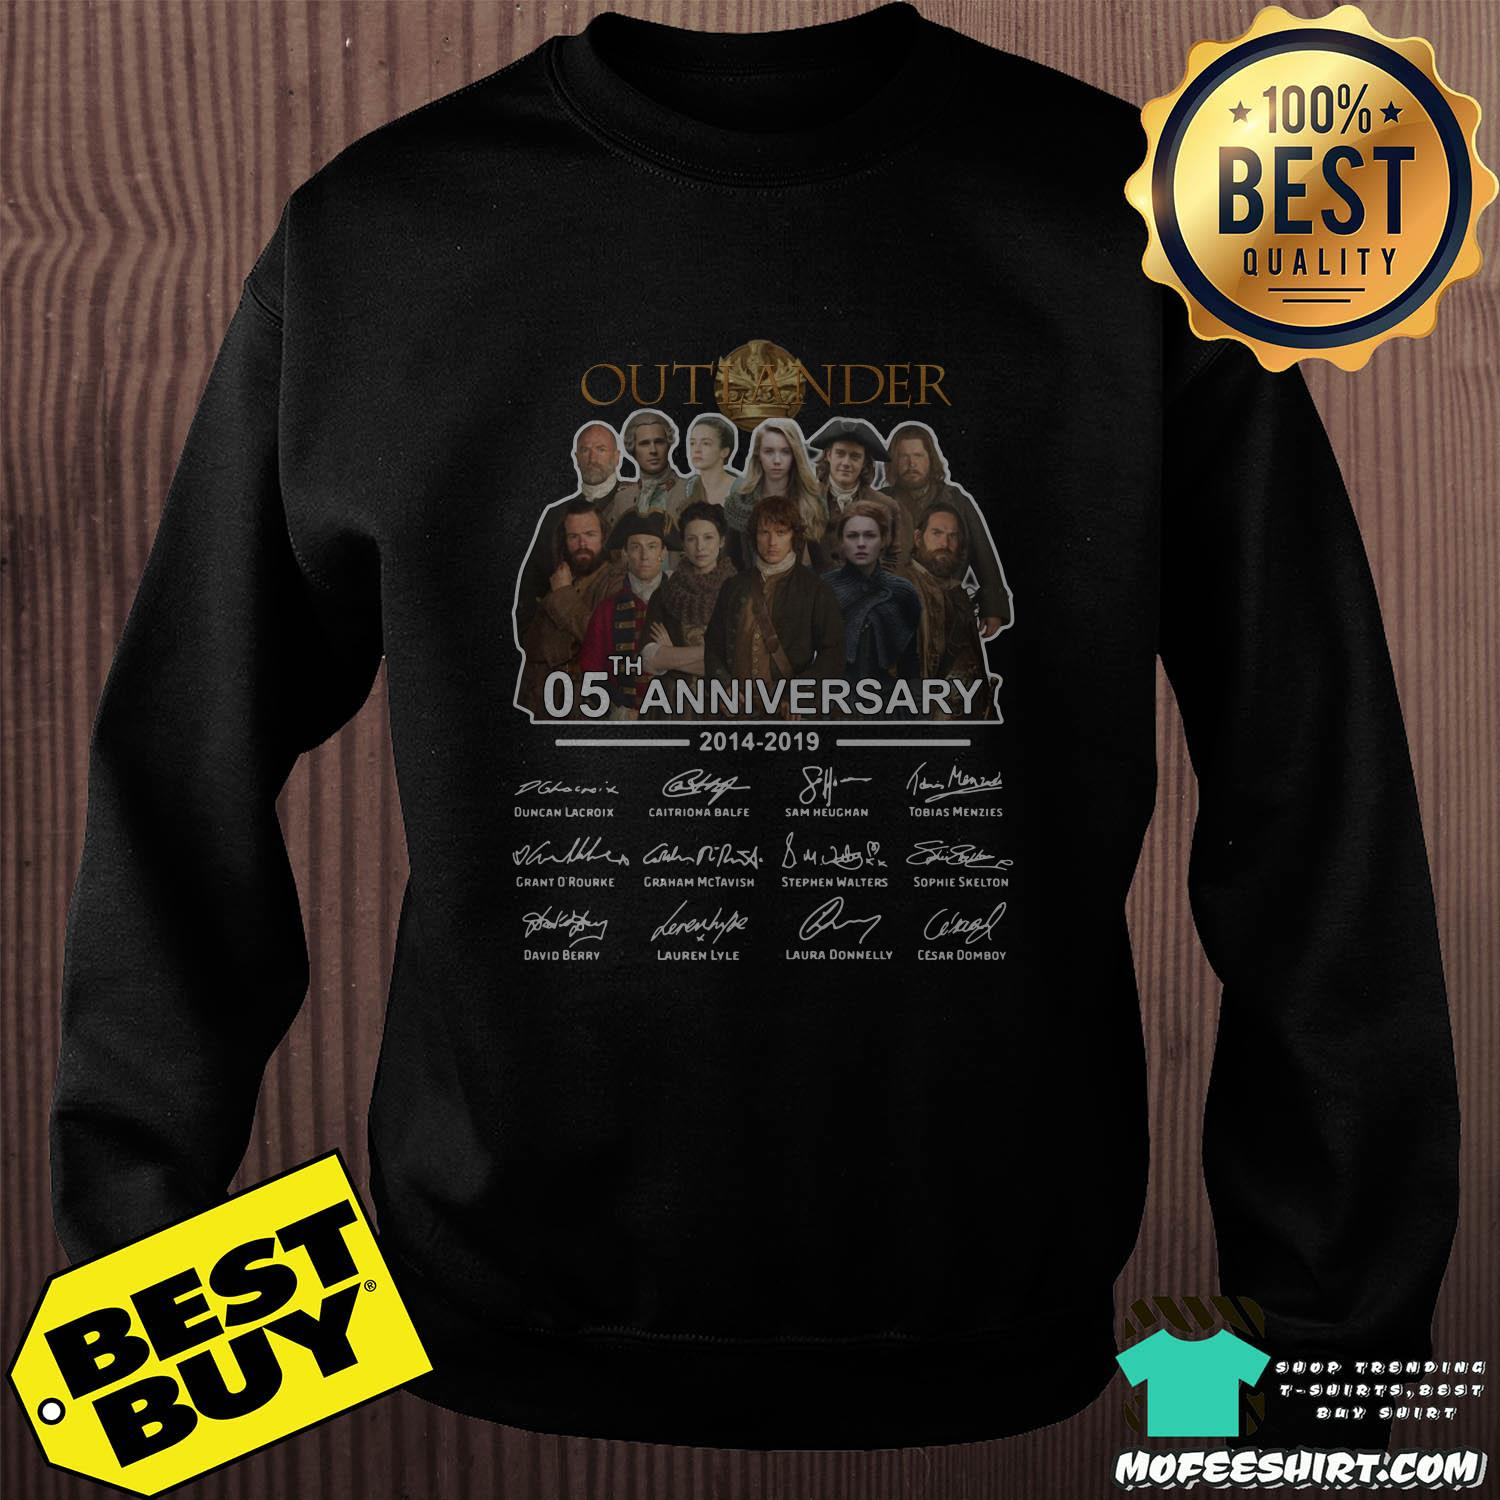 05th anniversary outlander 2014 2019 signatures sweatshirt - 05th Anniversary Outlander 2014-2019 signatures shirt